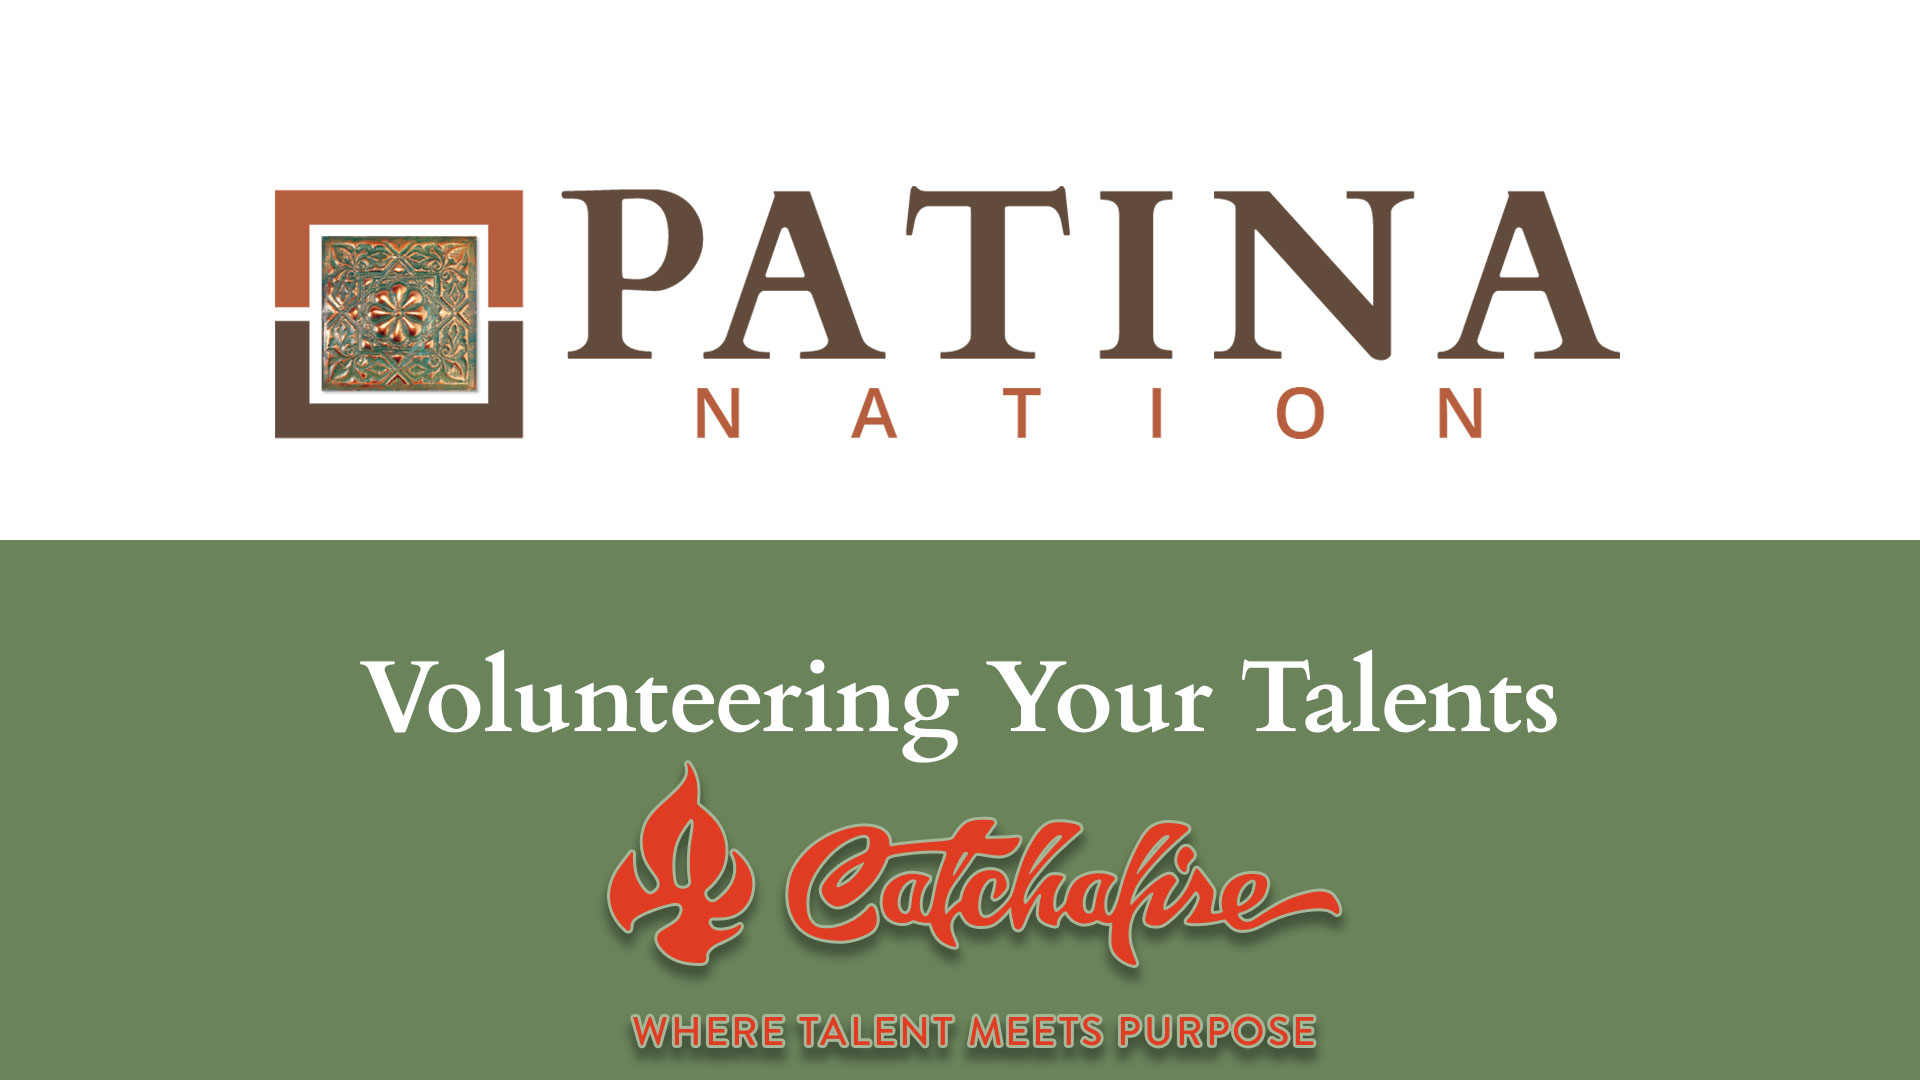 Volunteering Your Talents